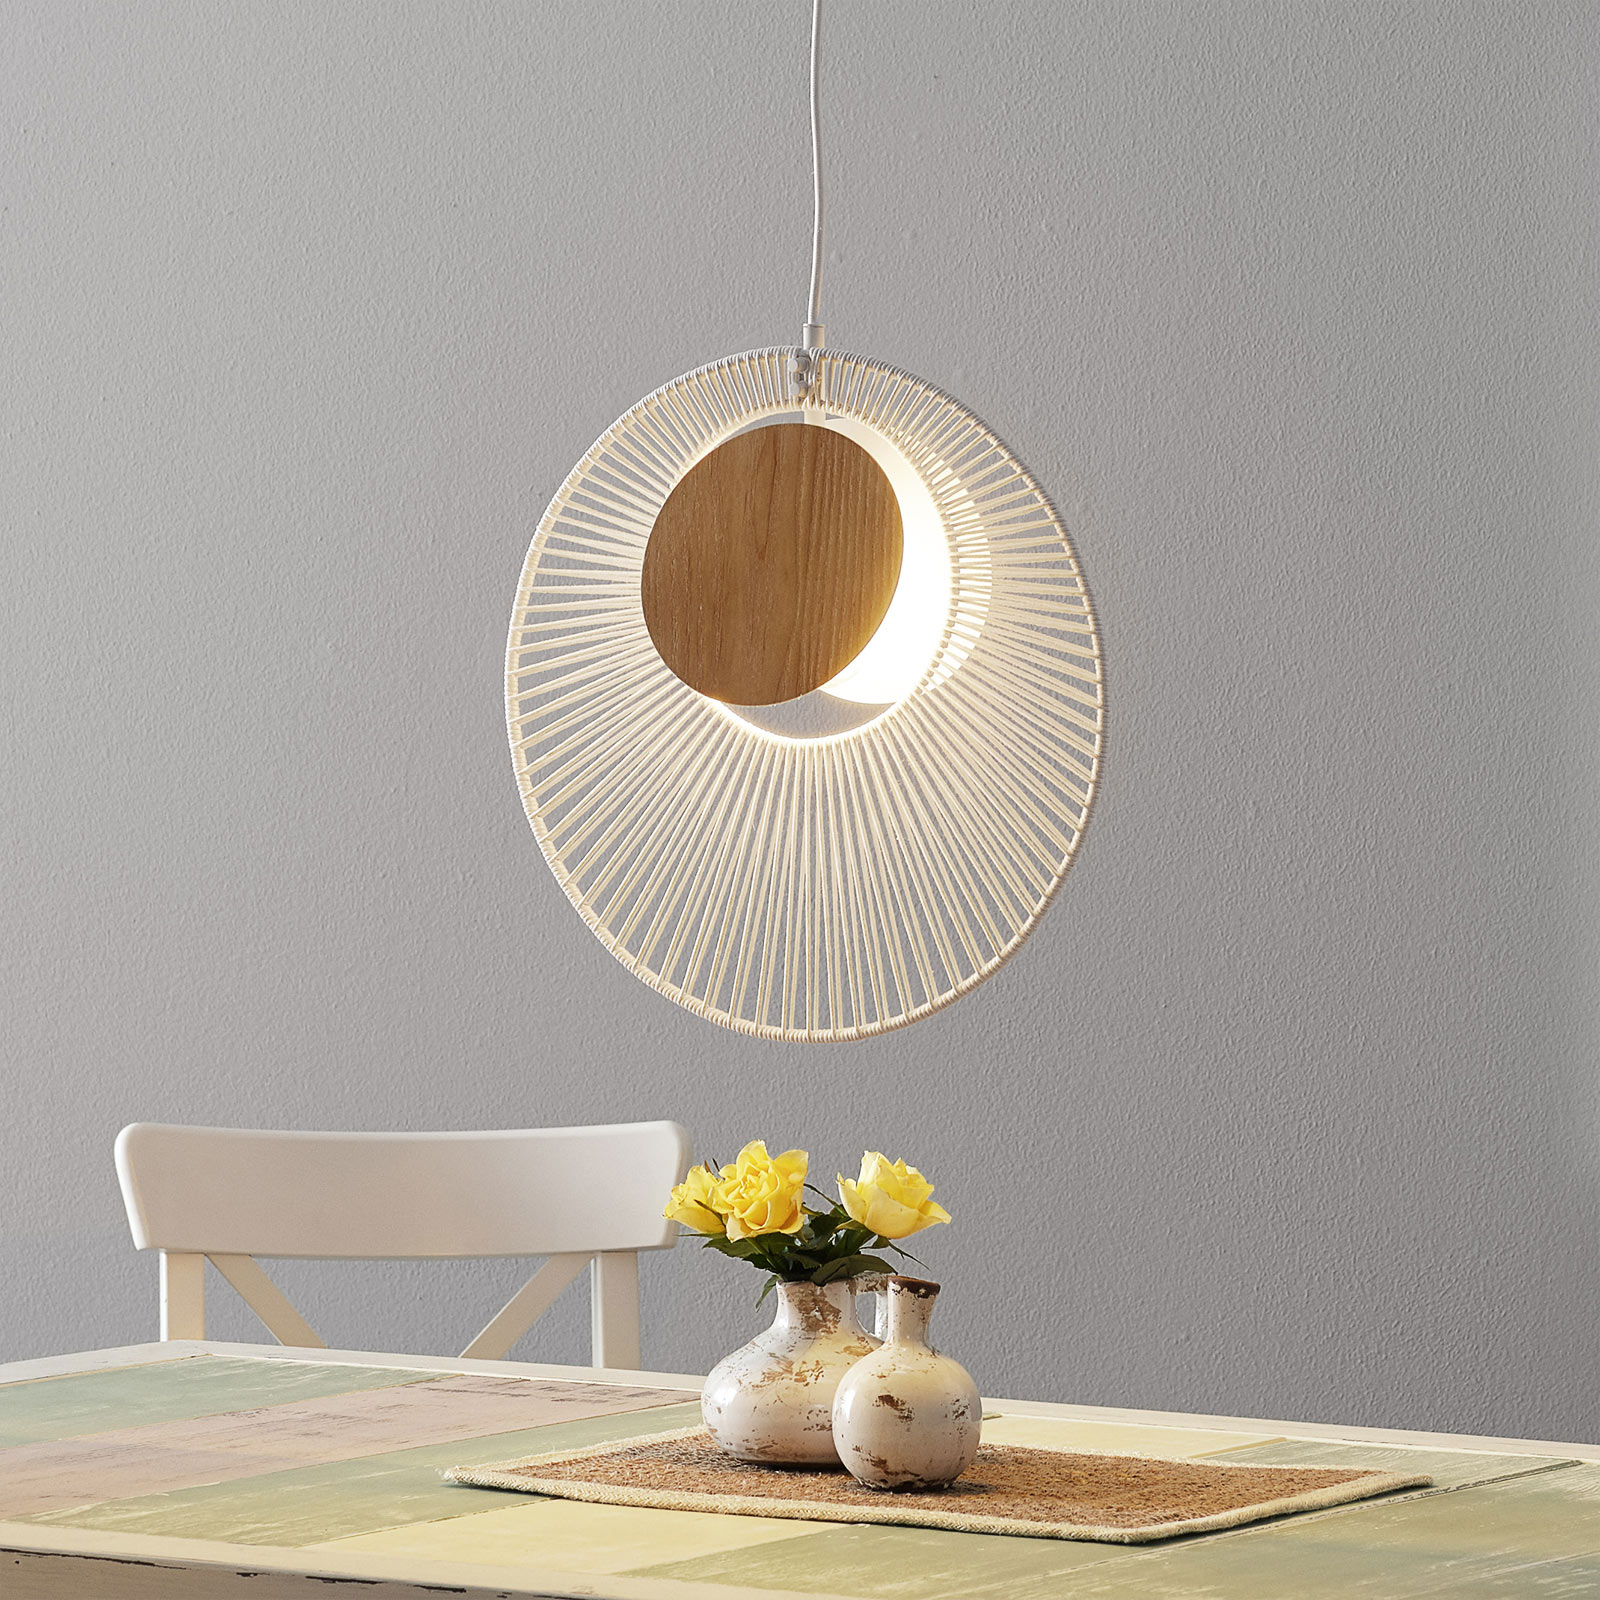 Forestier Oyster design-hanglamp, wit